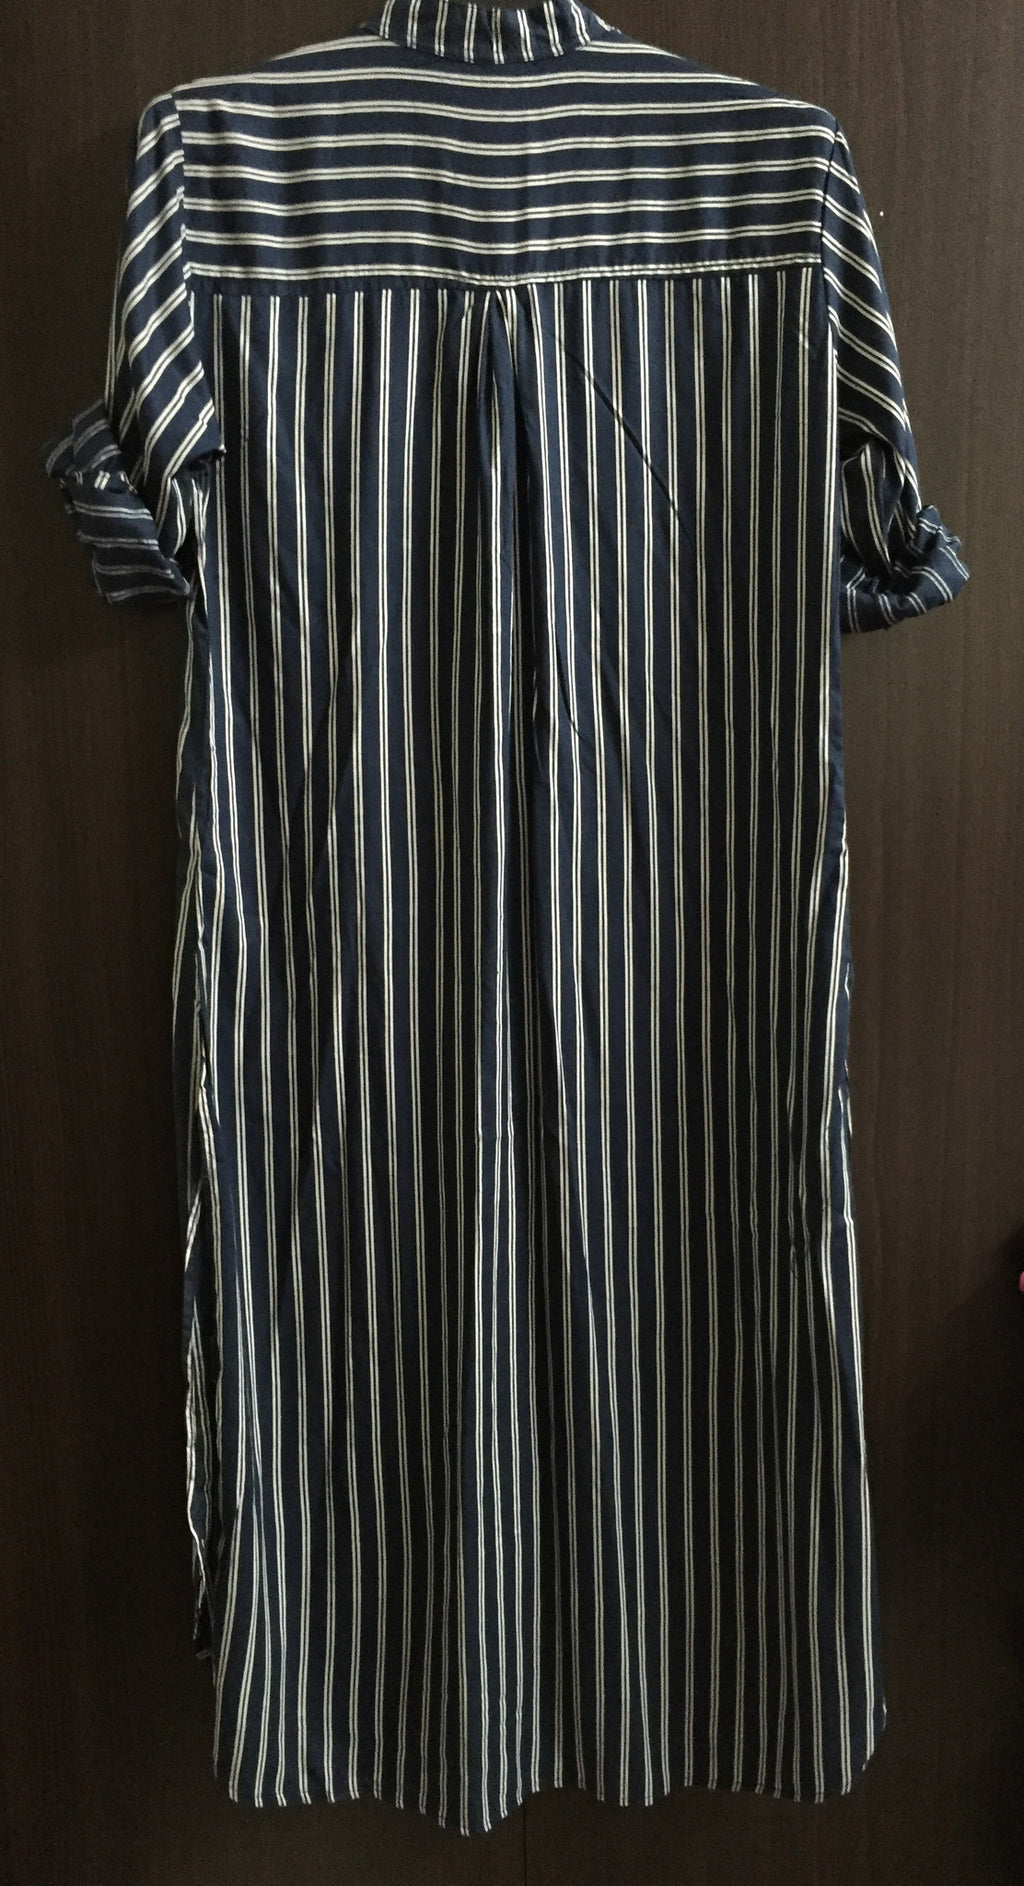 Shirtdress - Cream Double stripes on Blue Shirtdress